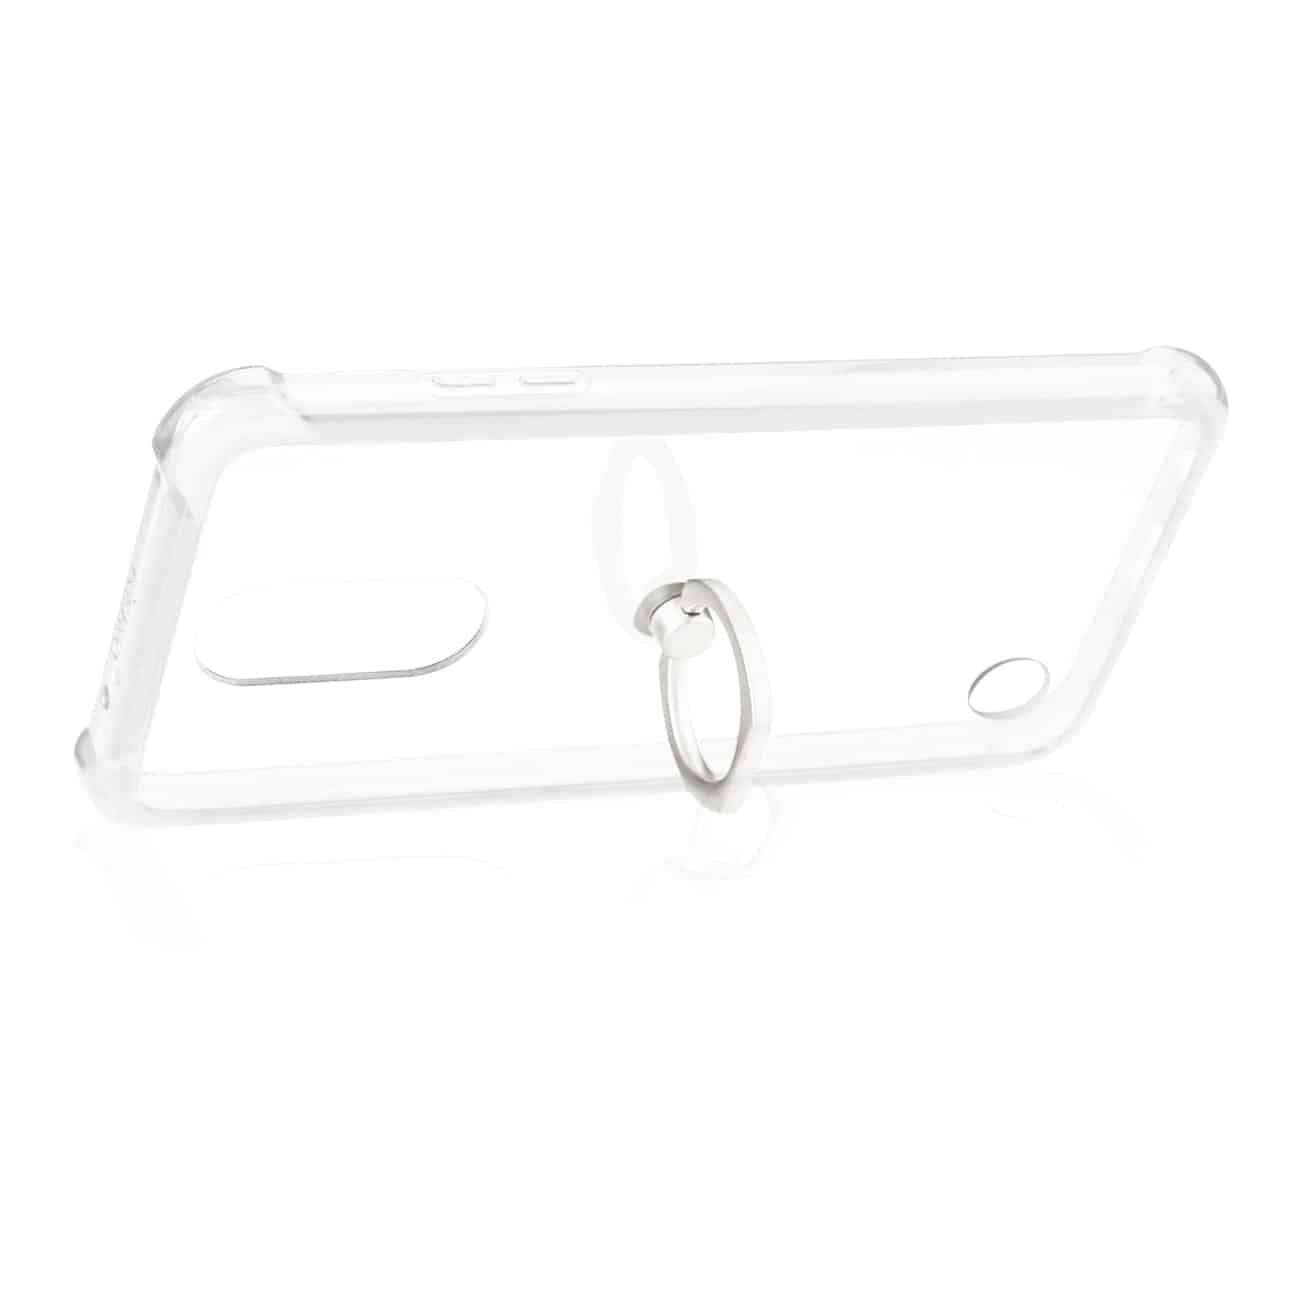 LG FORTUNE/ PHOENIX 3/ ARISTO TRANSPARENT AIR CUSHION PROTECTOR BUMPER CASE WITH RING HOLDER IN CLEAR